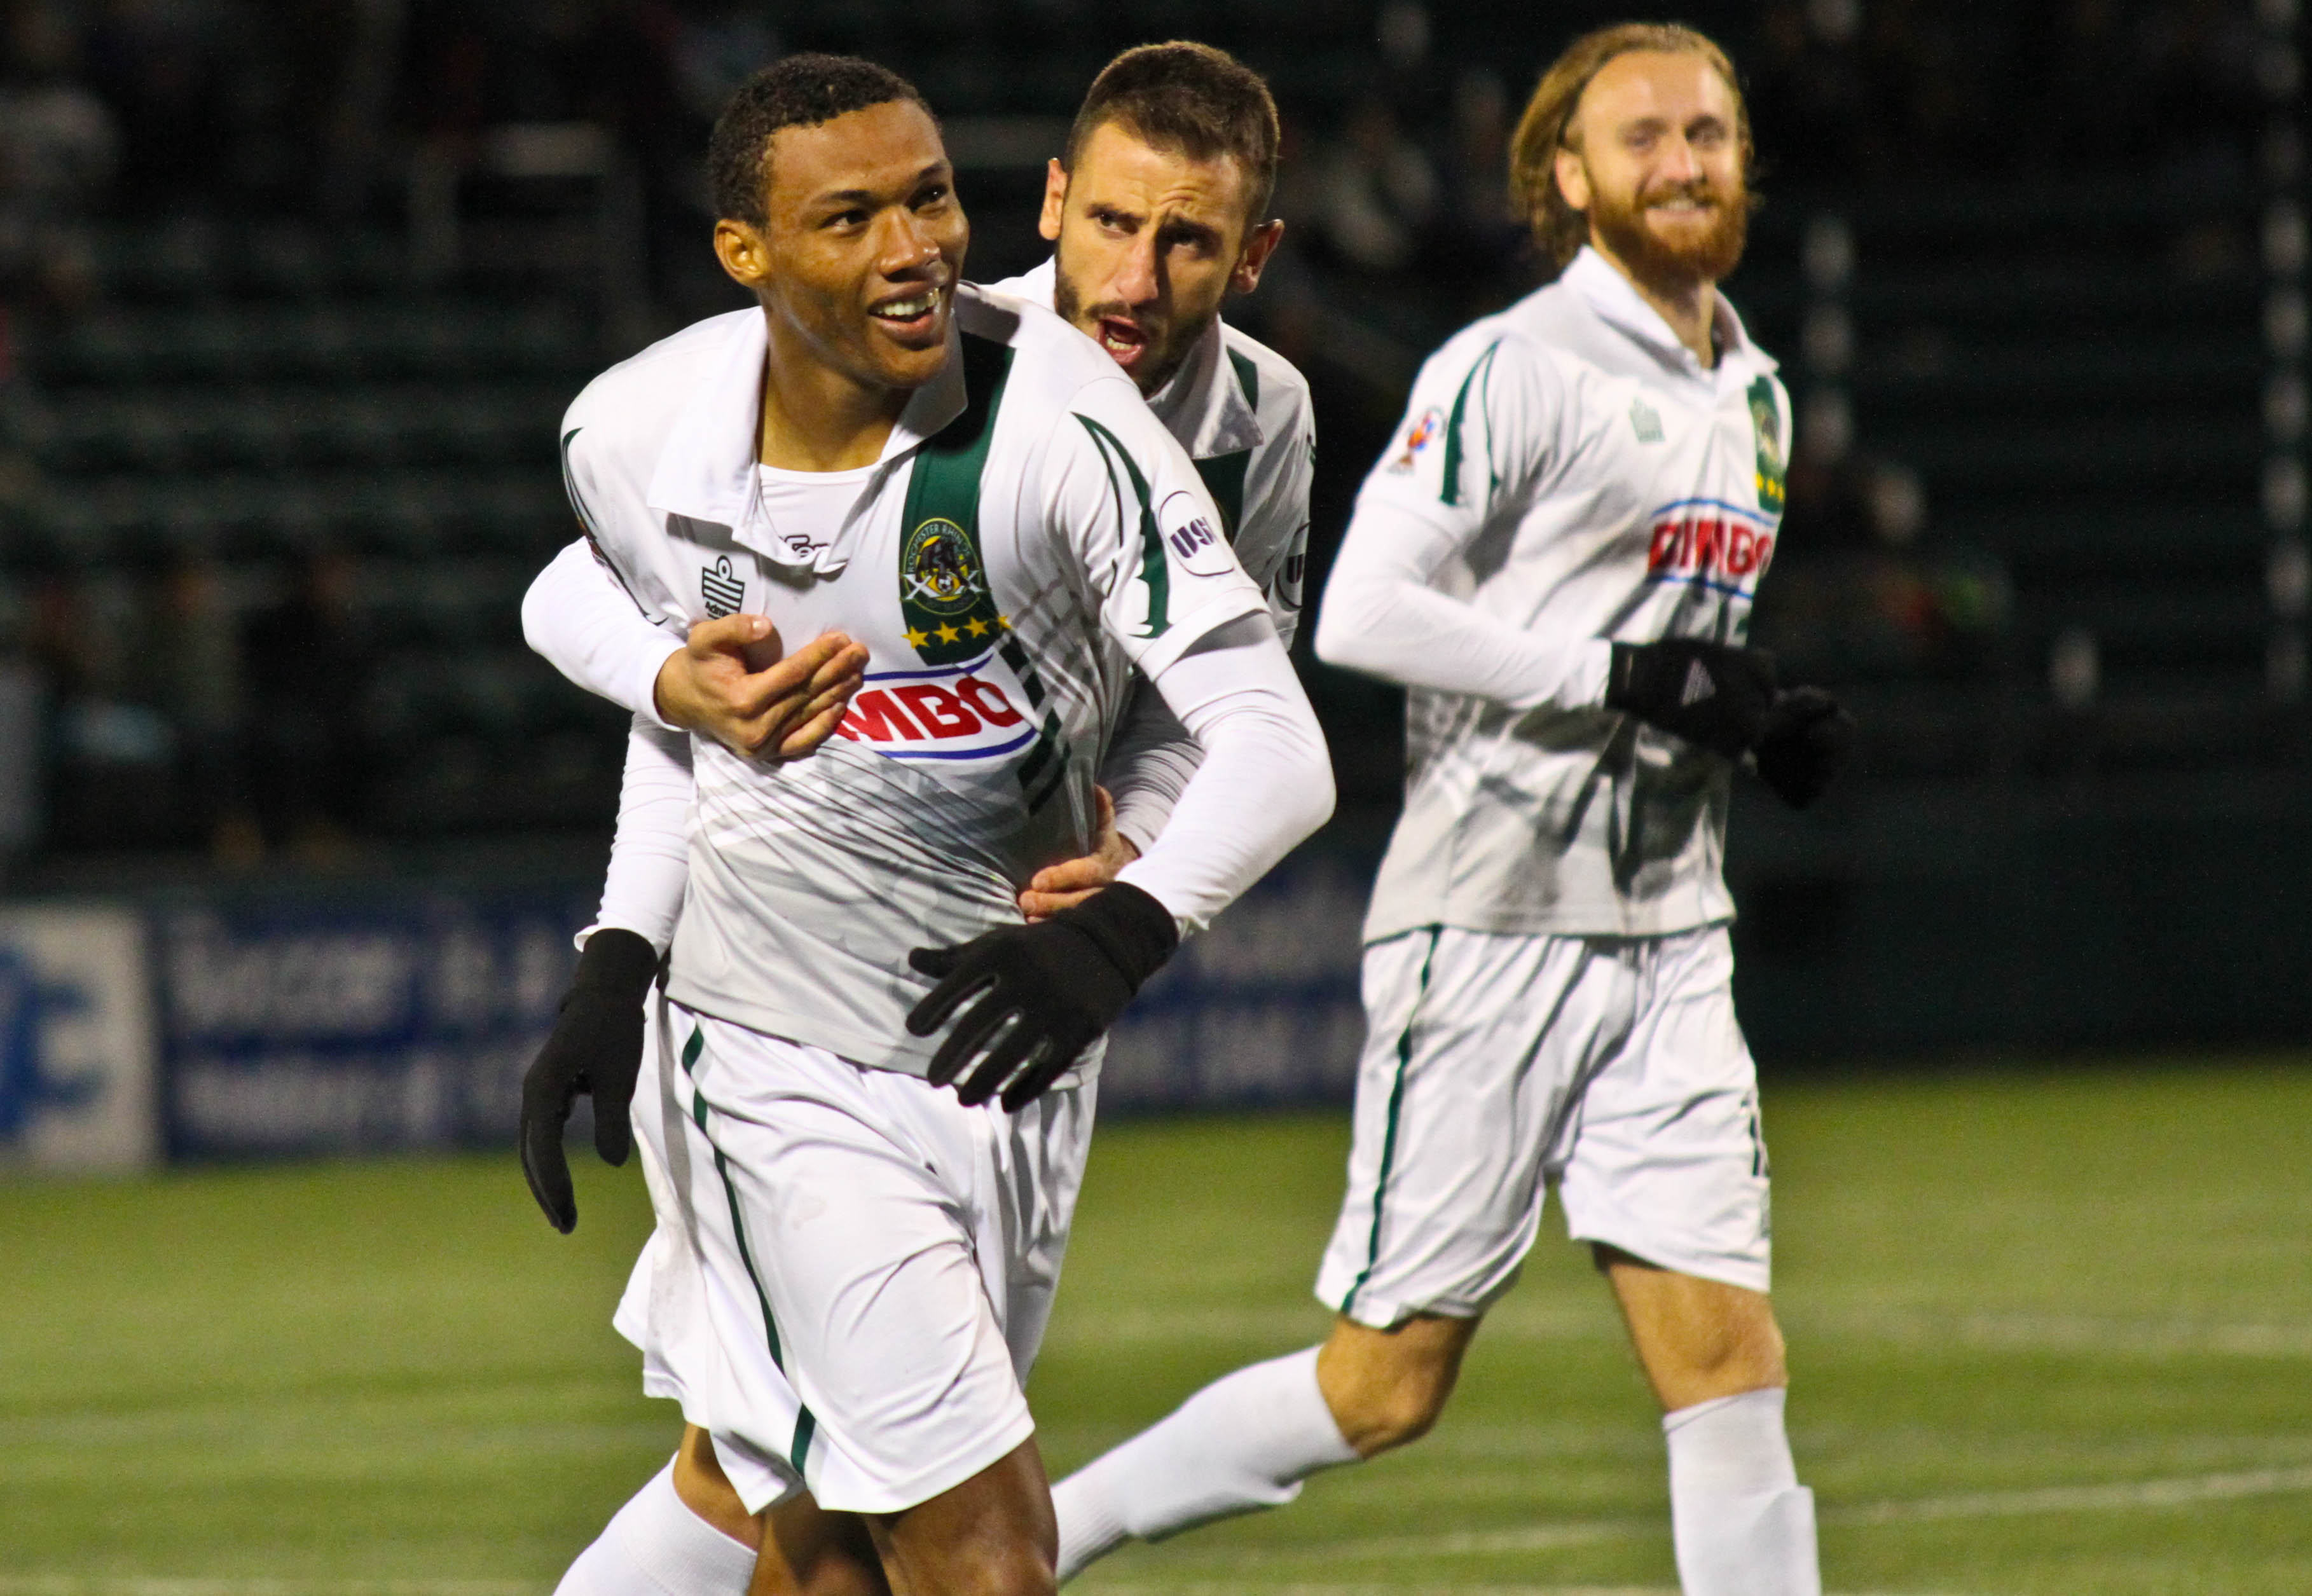 """Steevan Humberto Fortes """"Duba"""" dos Santos did not score on his return from suspension but was instrumental for Rochester"""